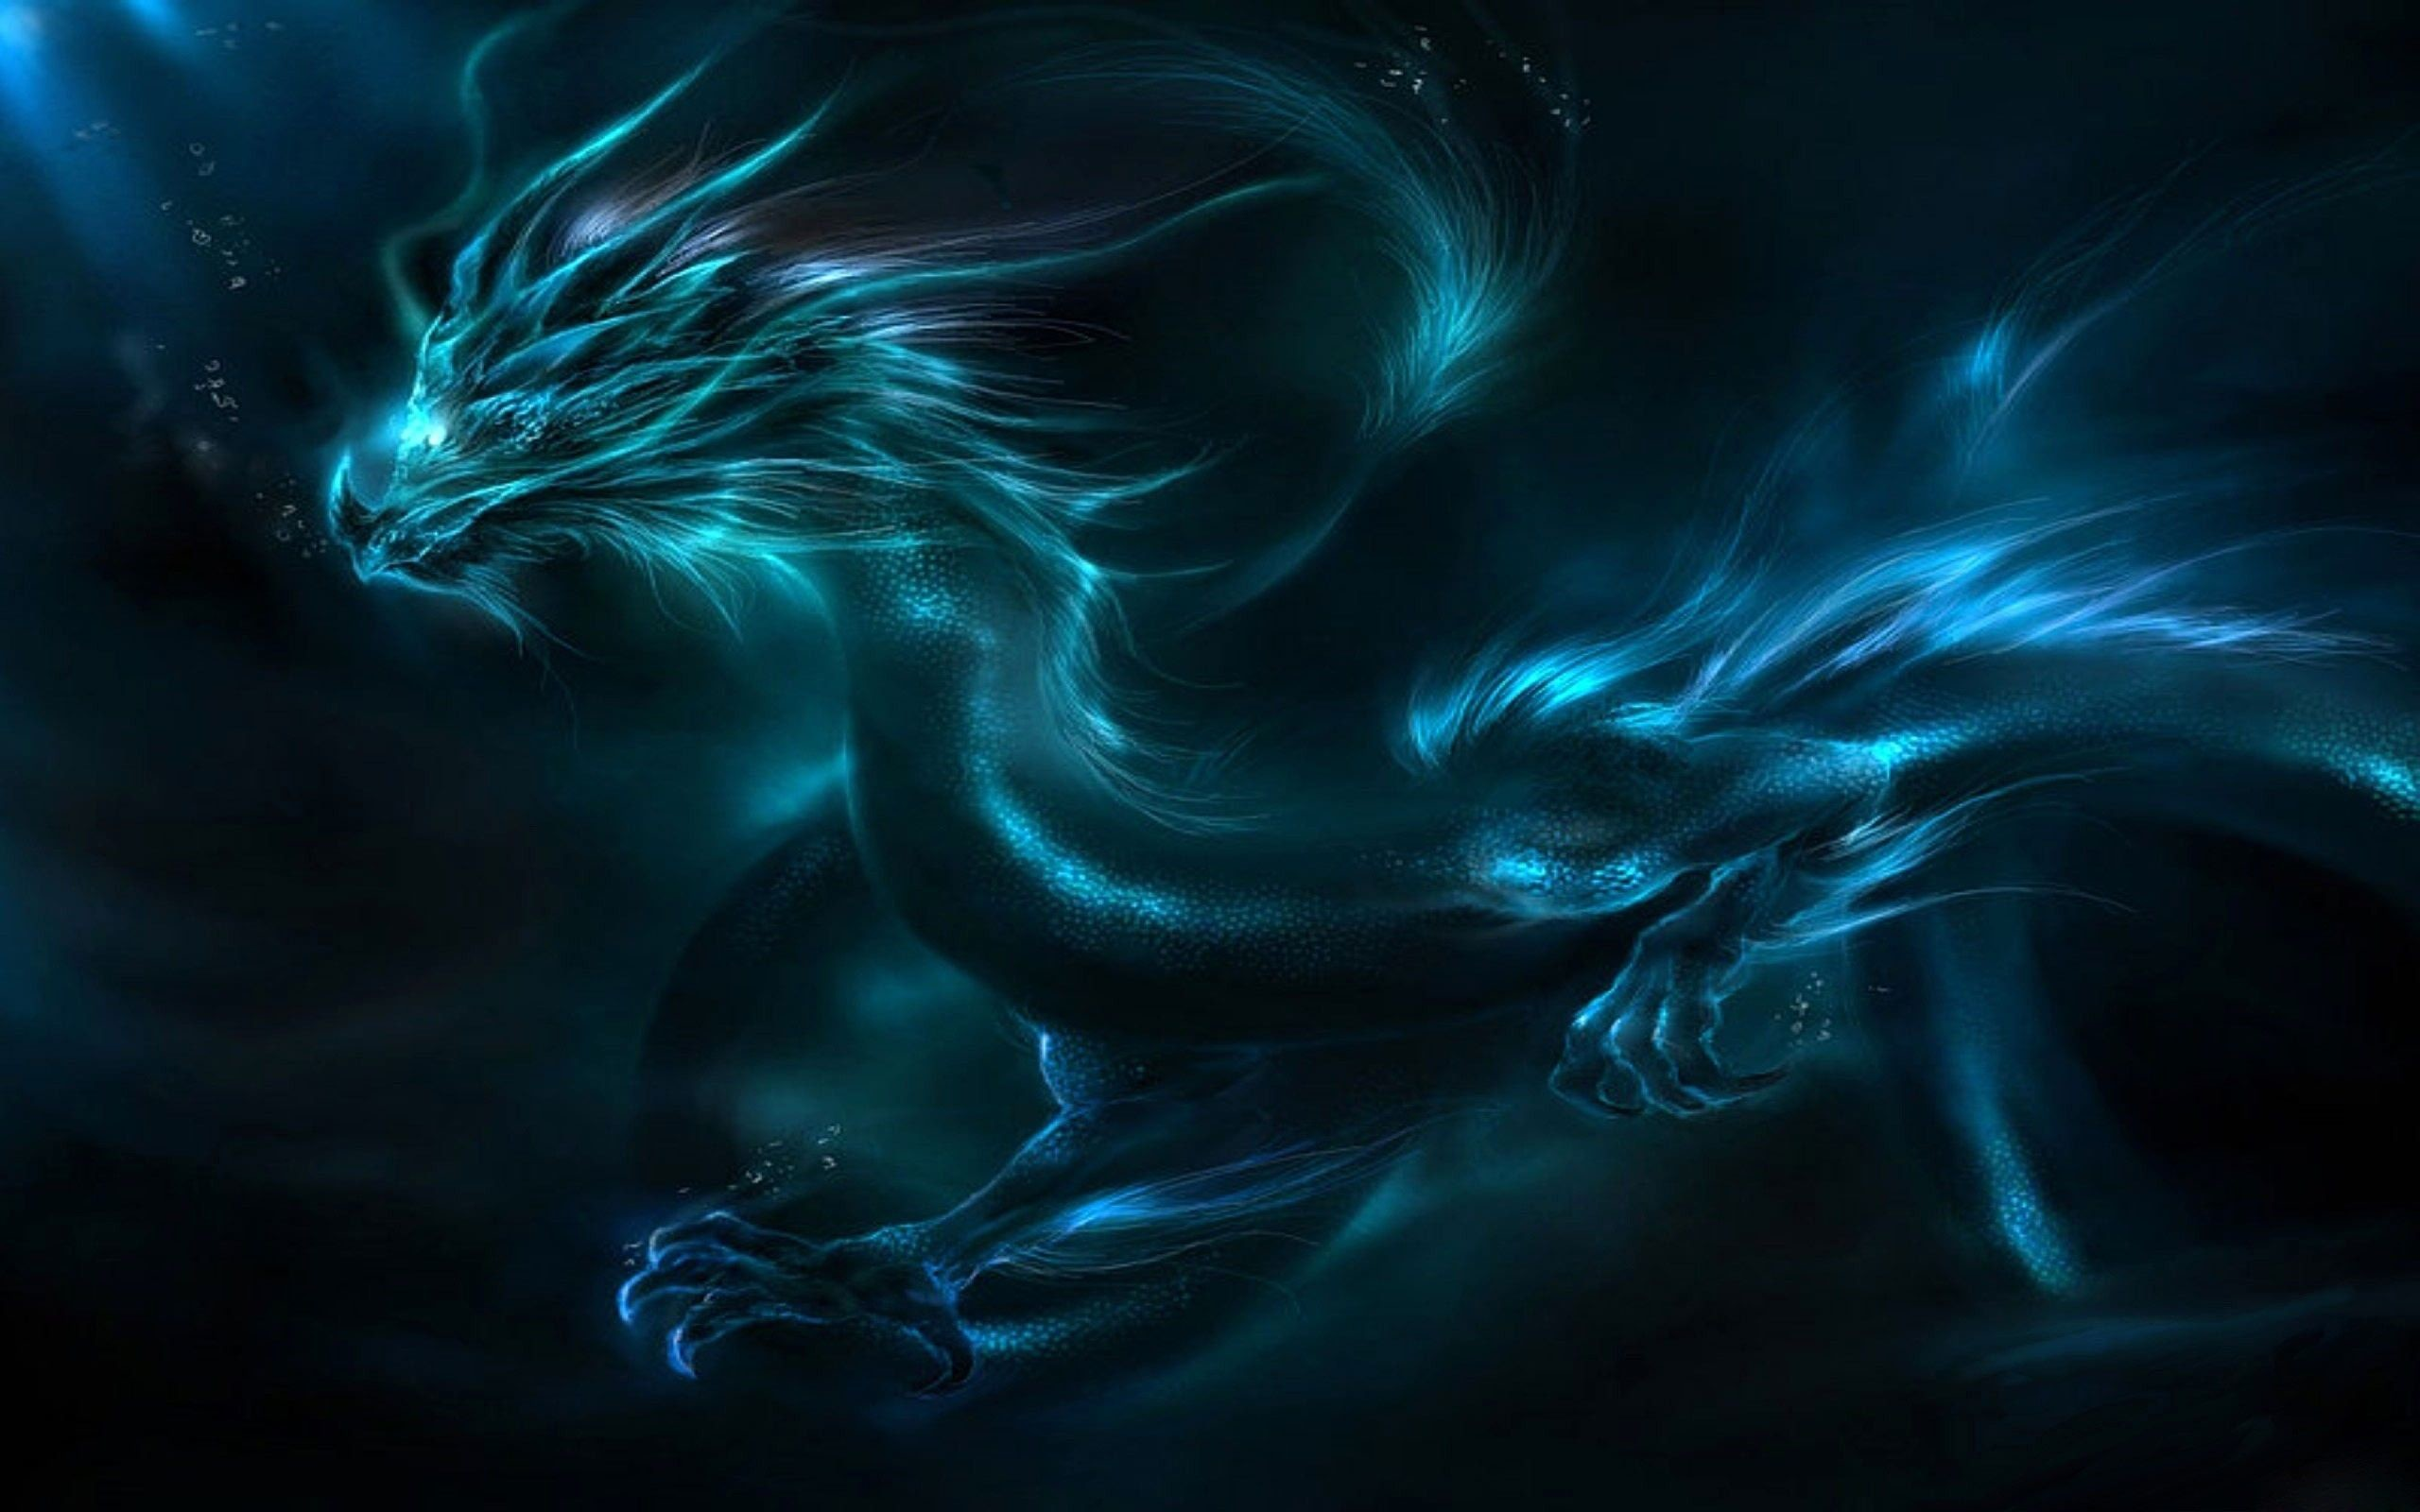 Cool 3D Dragon Wallpapers 55 Images